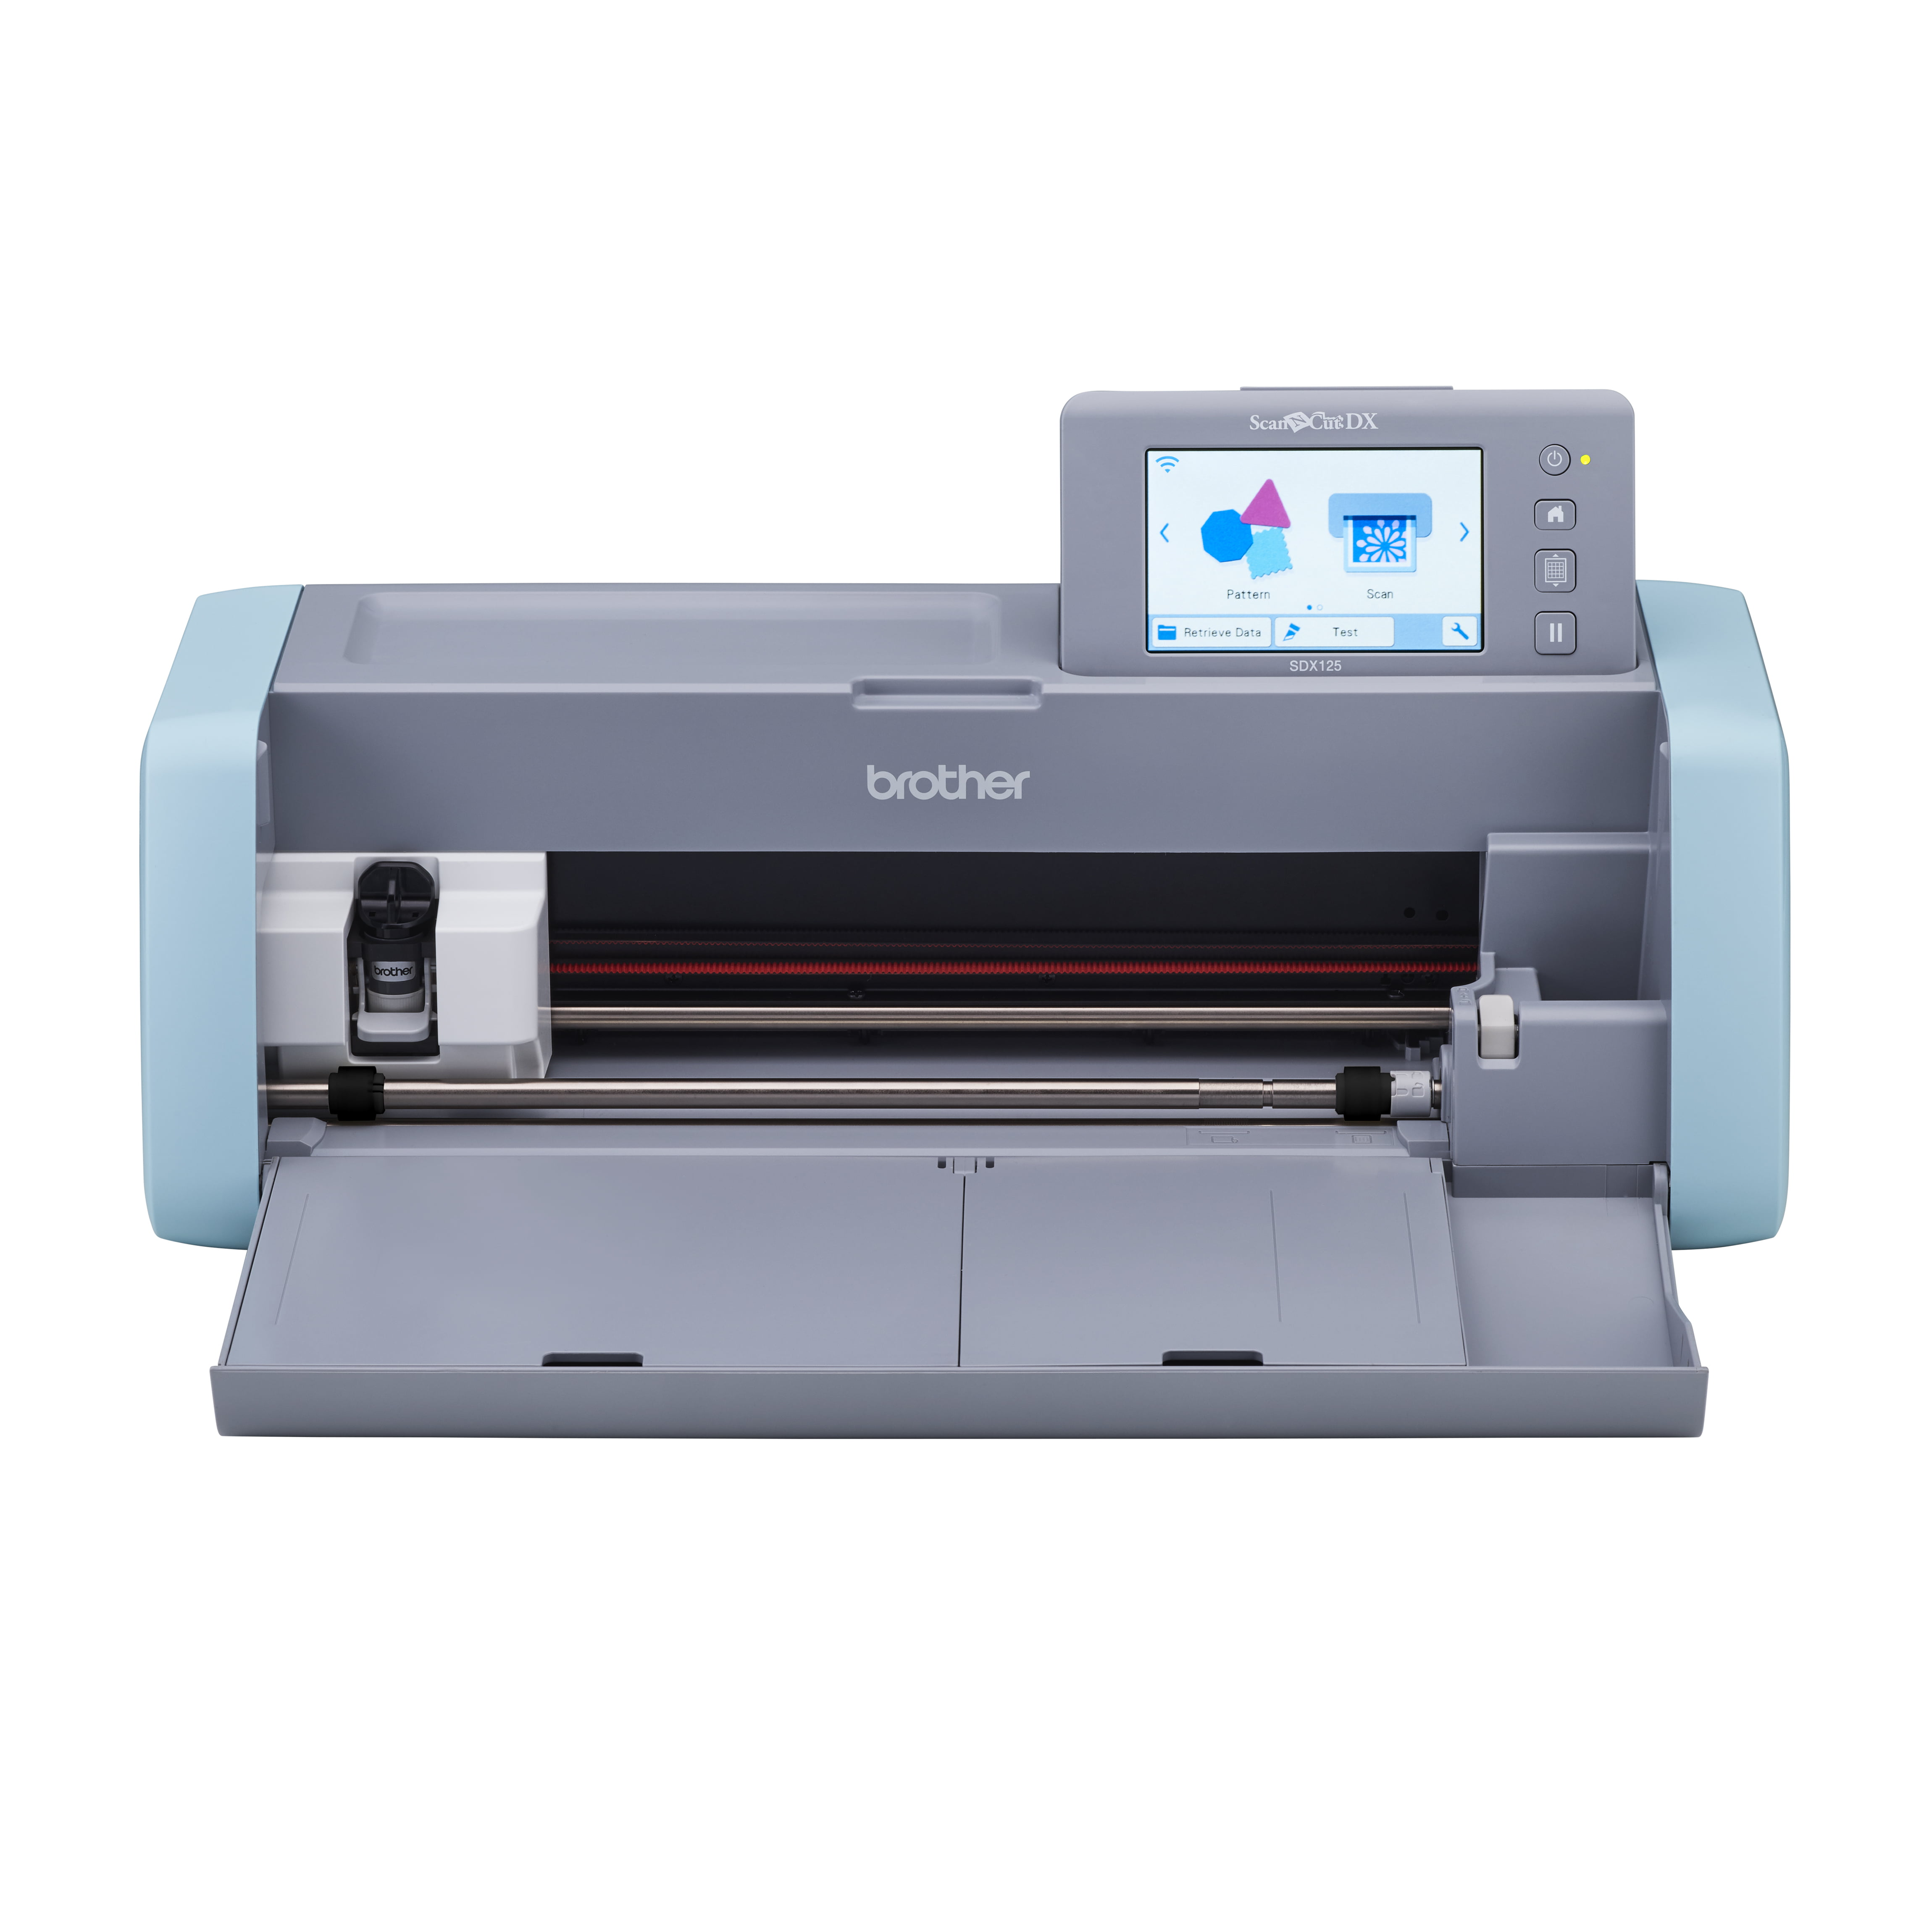 Brother ScanNCut DX SDX125 Electronic Cutting Machine